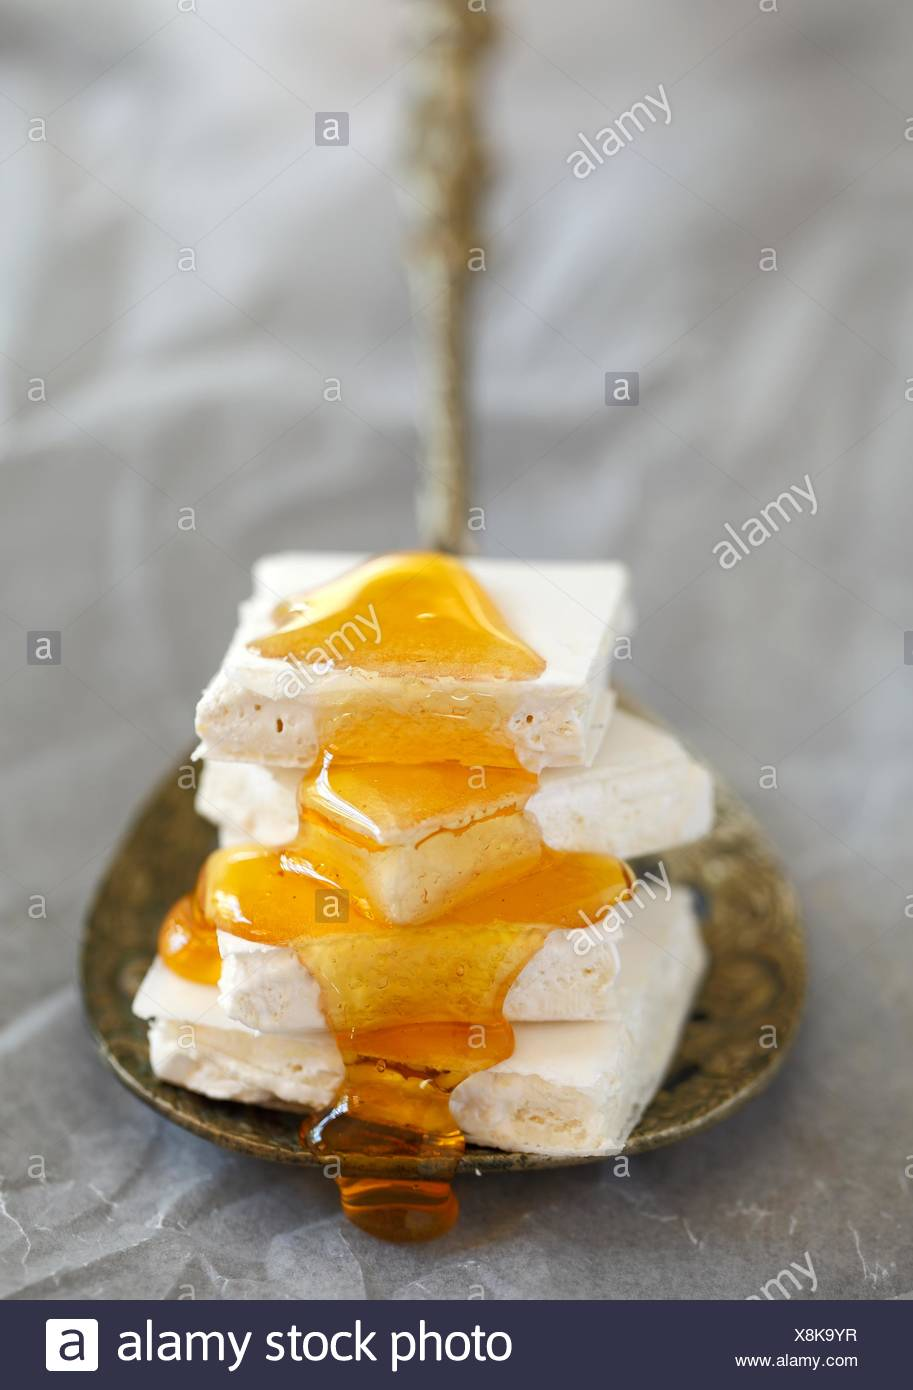 Square pieces of white, plain nougat in stack on metal spoon covered in drizzled honey - Stock Image